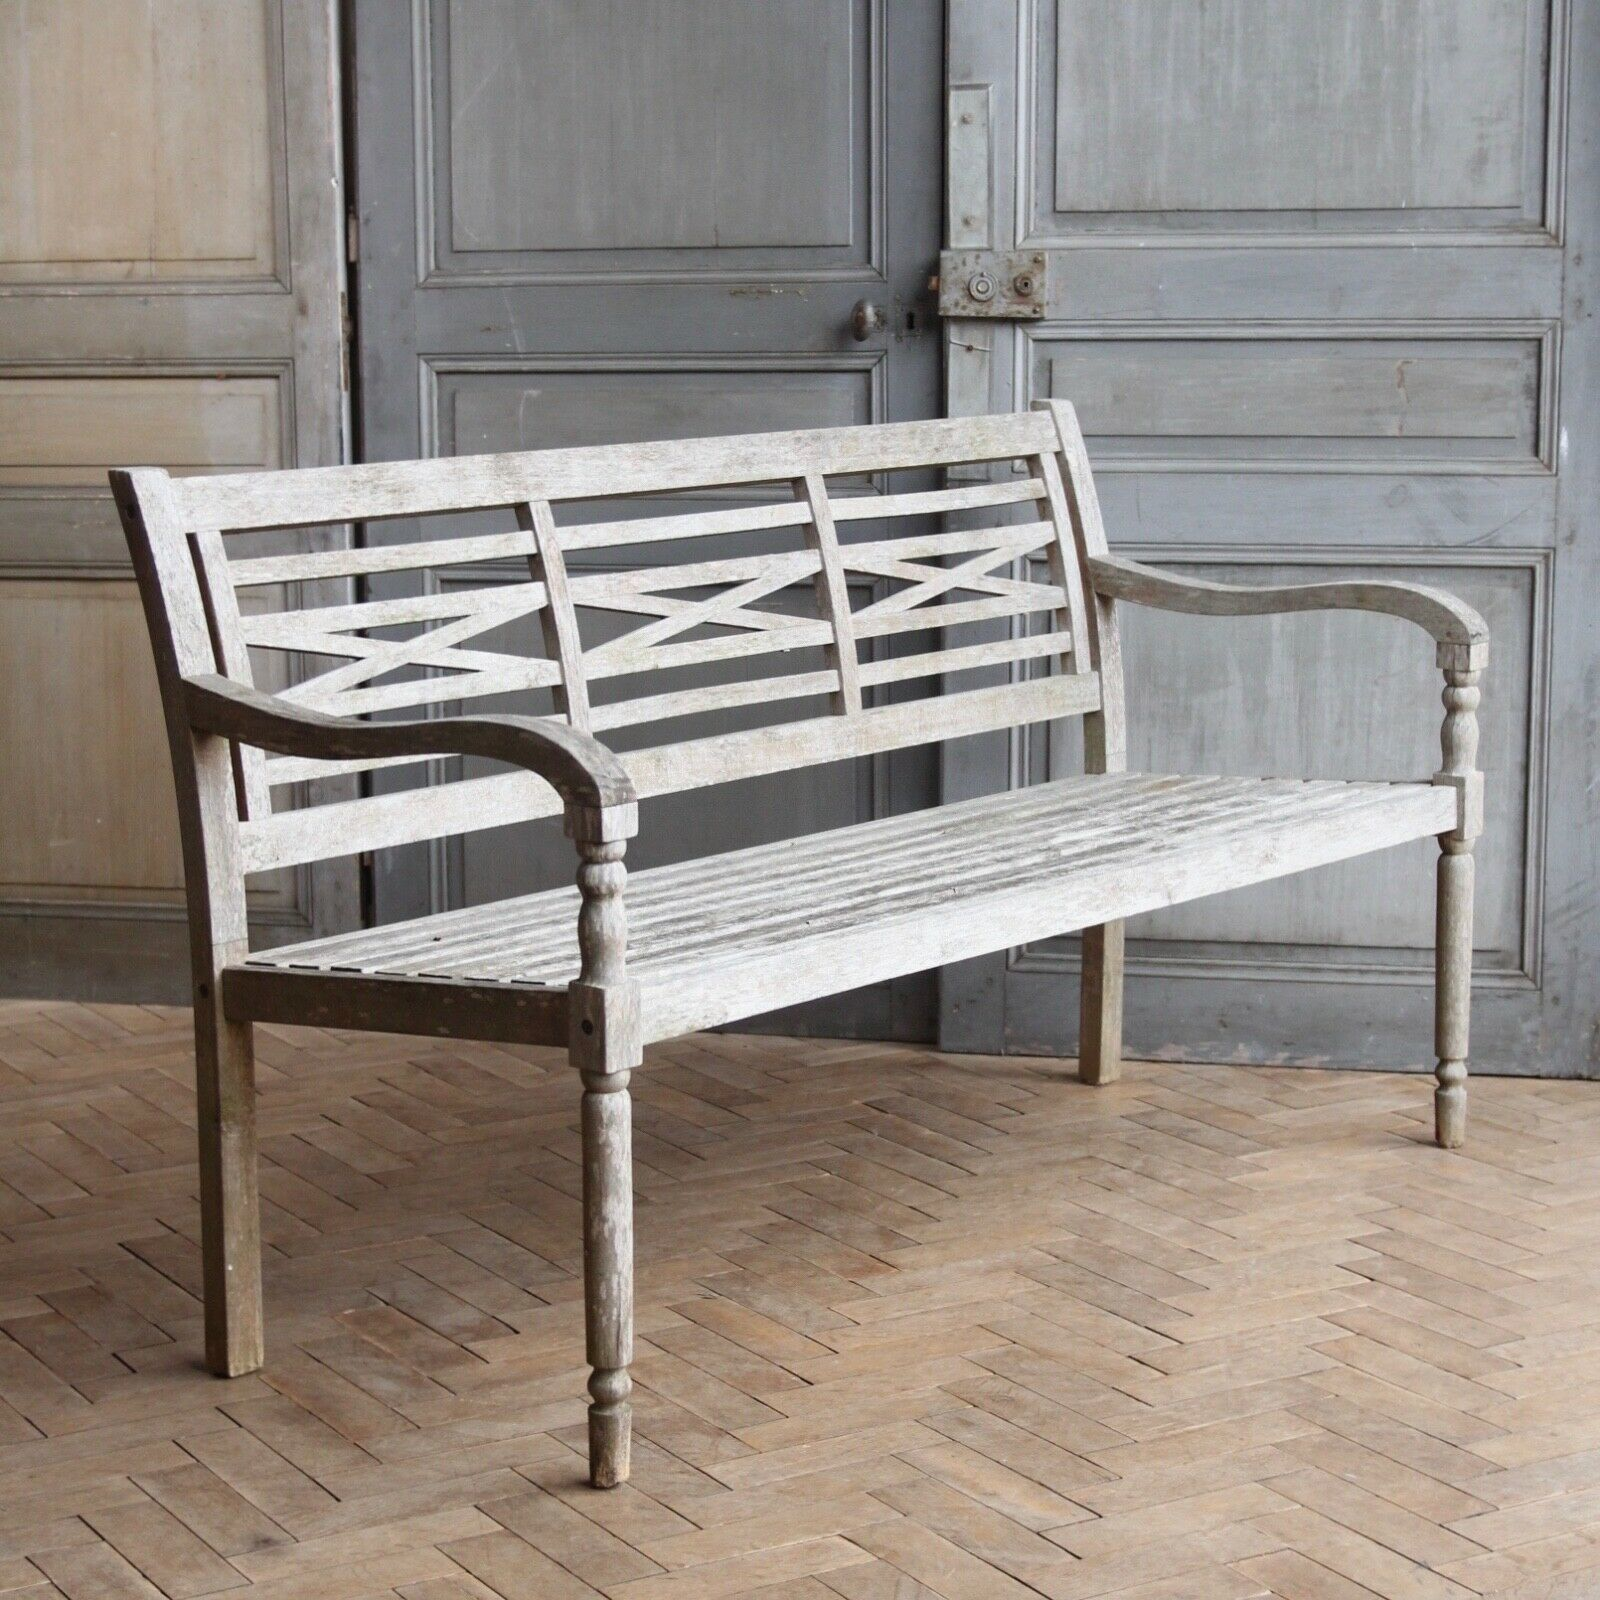 Astounding Vintage English Wooden Garden Bench Caraccident5 Cool Chair Designs And Ideas Caraccident5Info